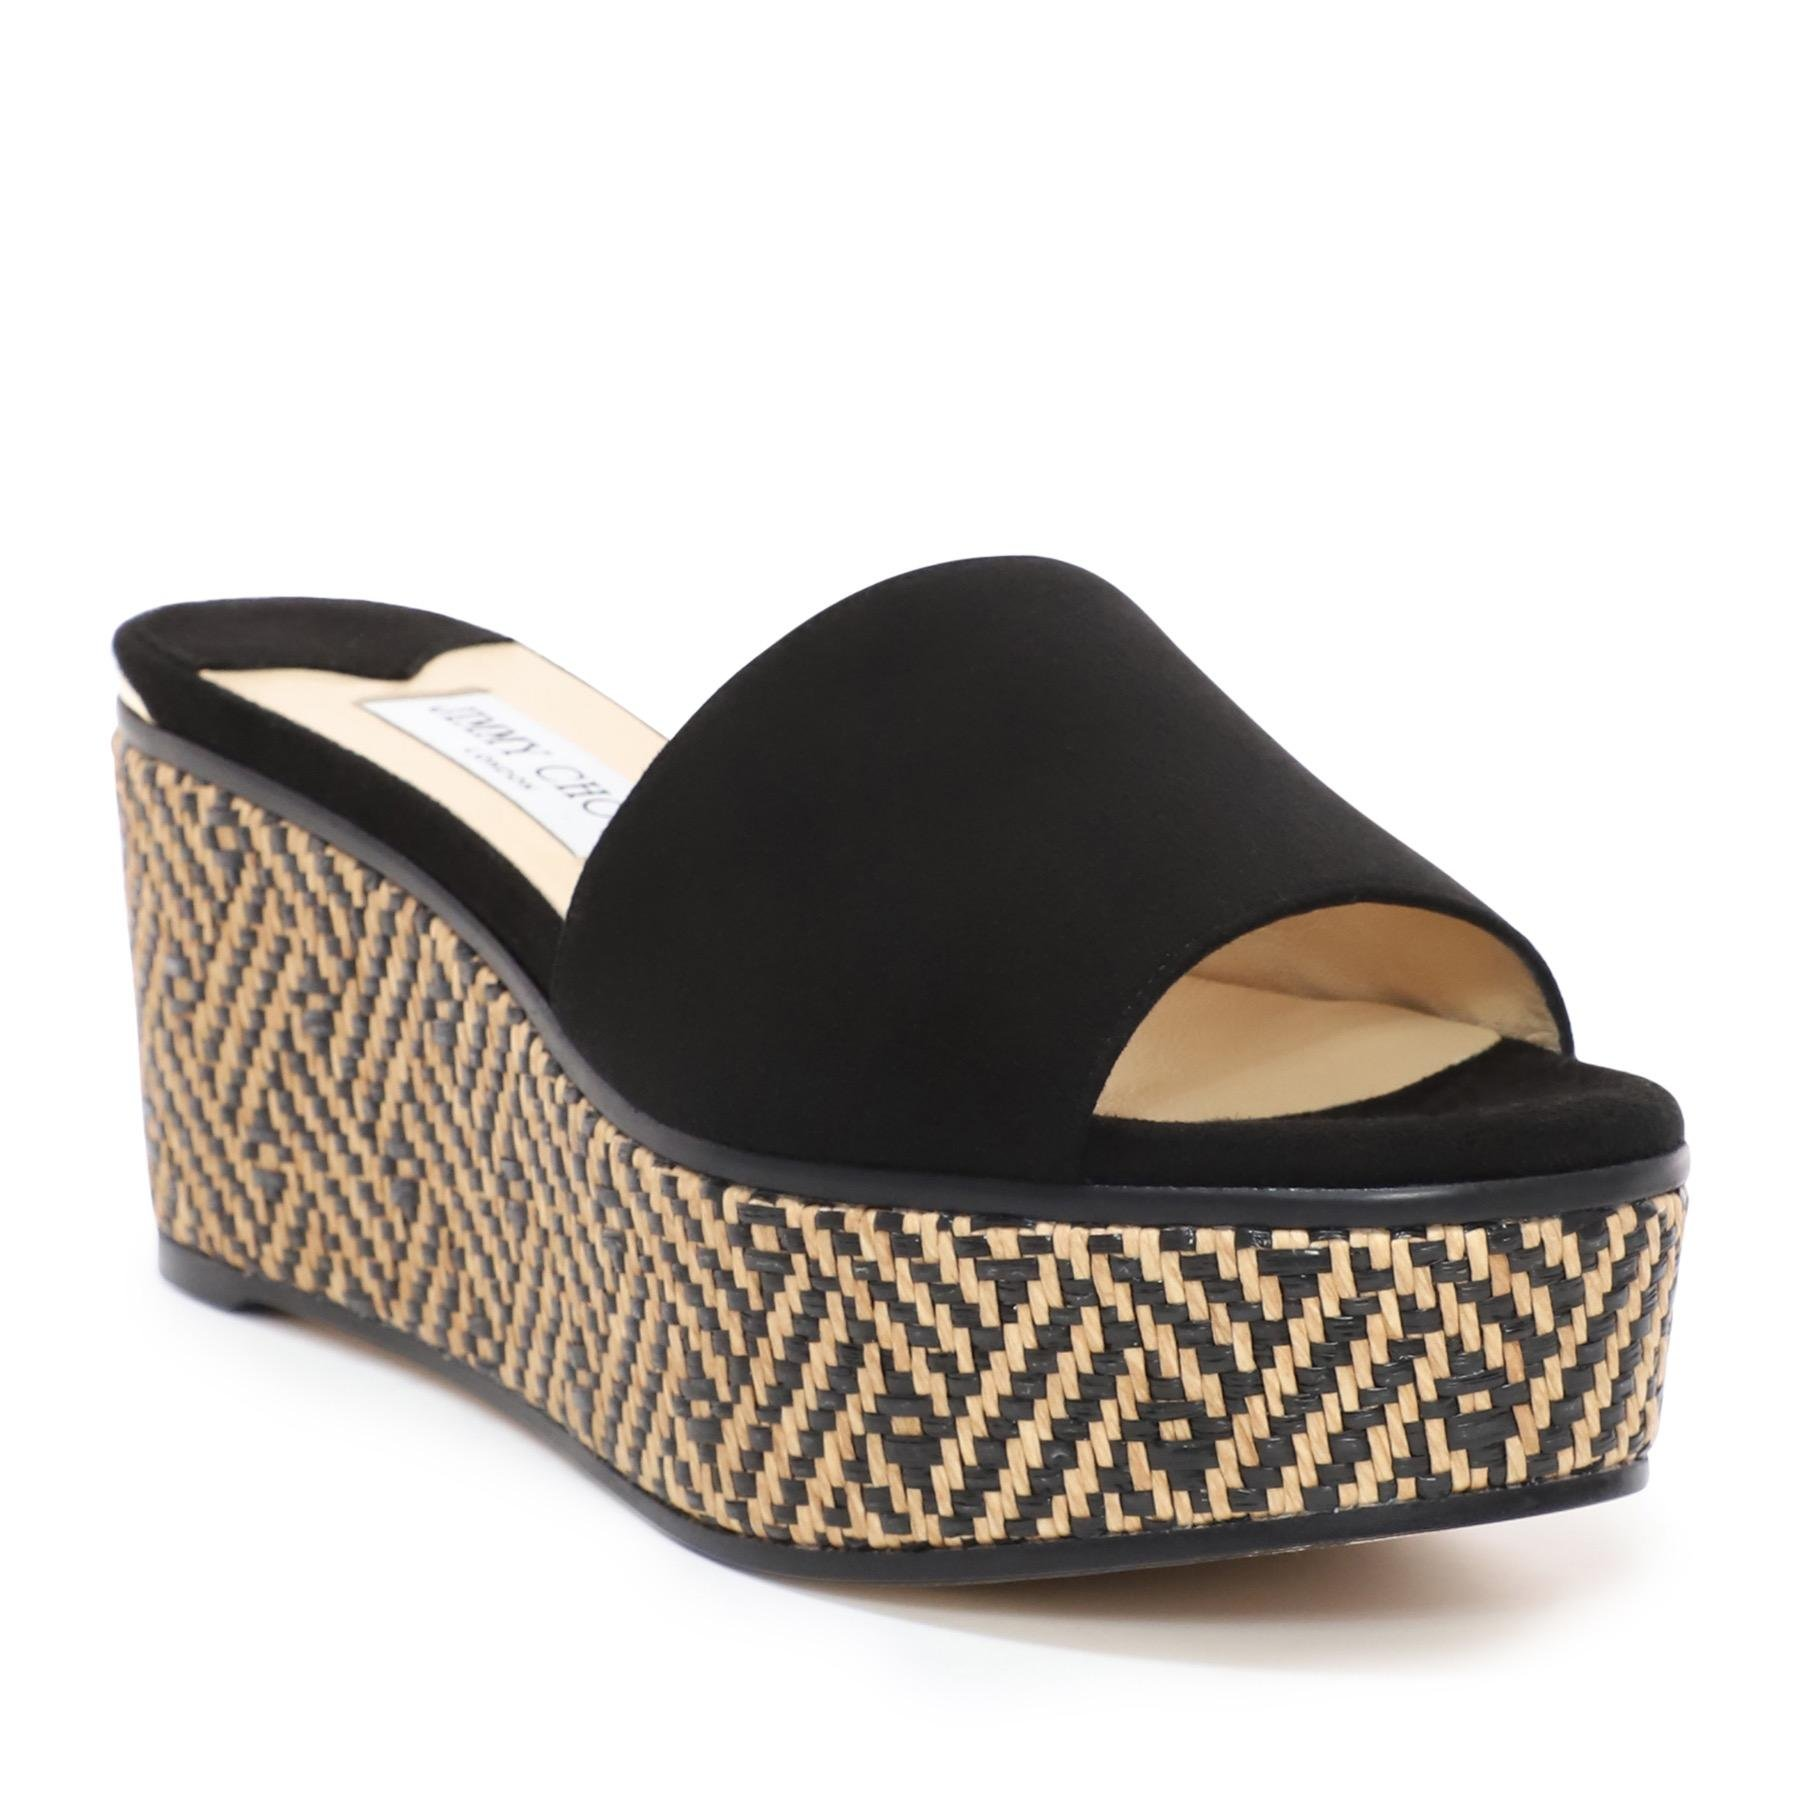 new collection amazing price retail prices Braided Raffia And Suede Mule Wedges